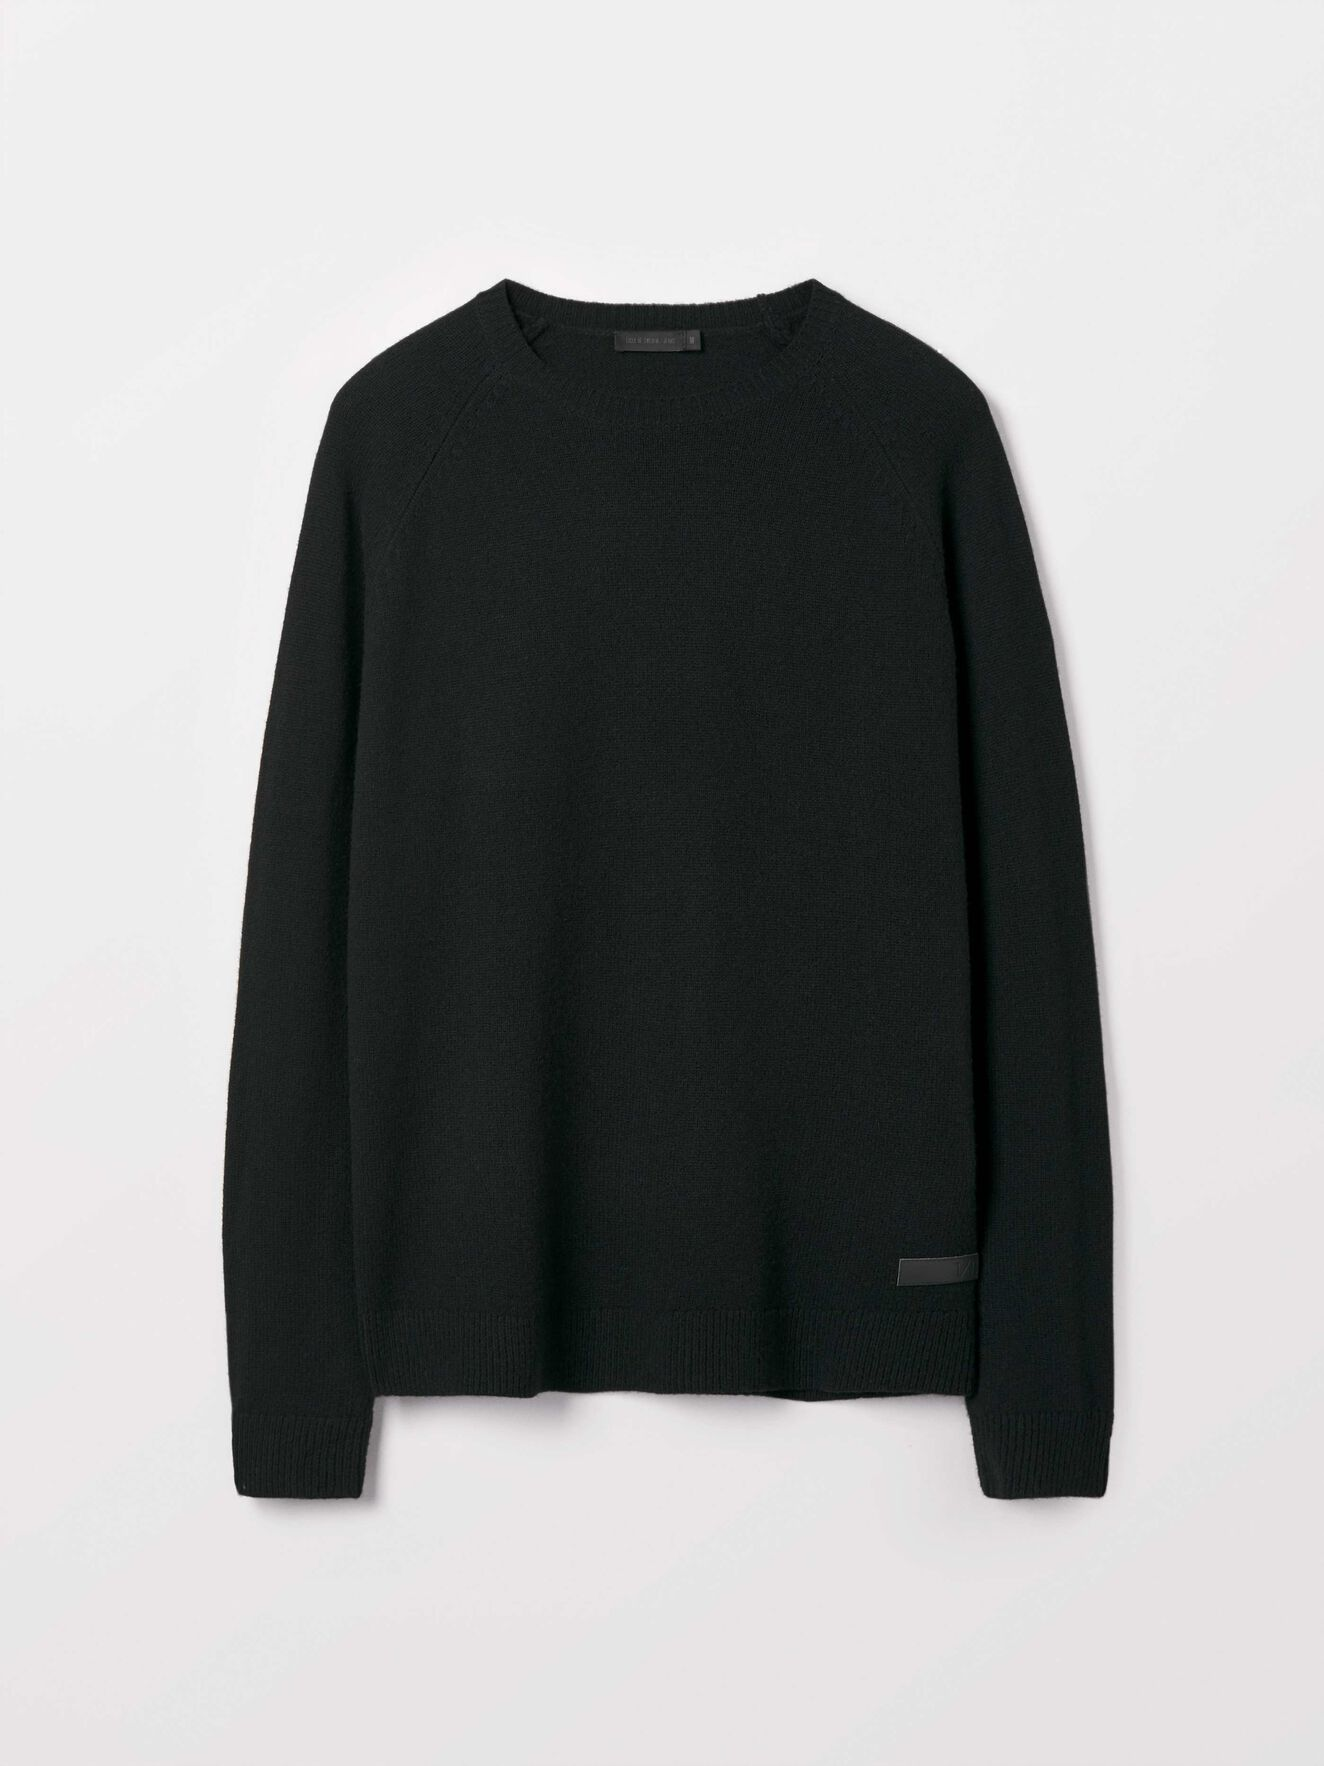 Friend Pullover in Black from Tiger of Sweden